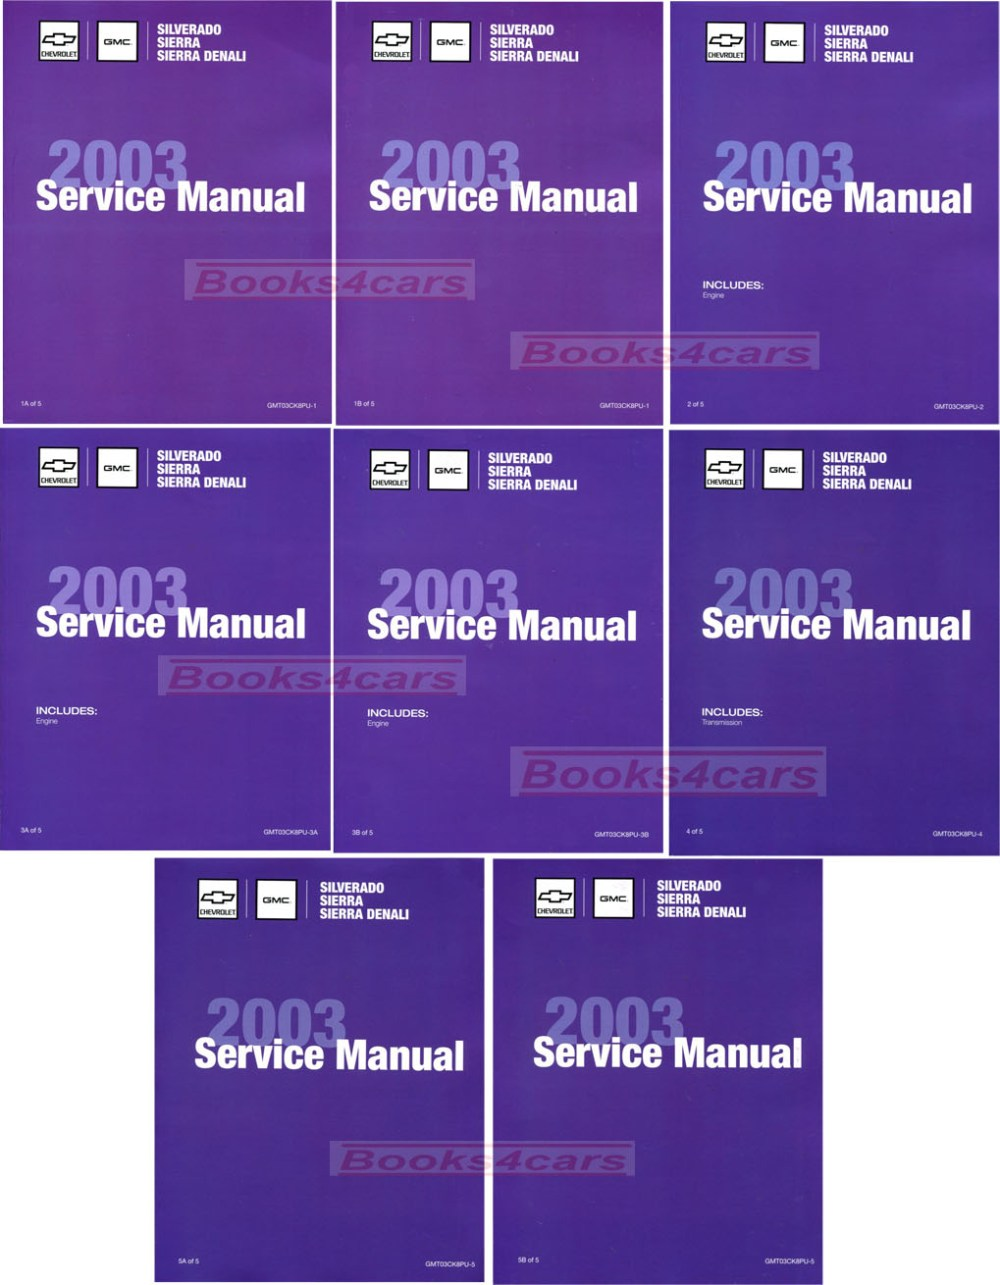 medium resolution of 2003 silverado sierra denali shop service repair manual by chevrolet gmc truck includes hd and diesel duramax engine b03 gmt03ck8pu